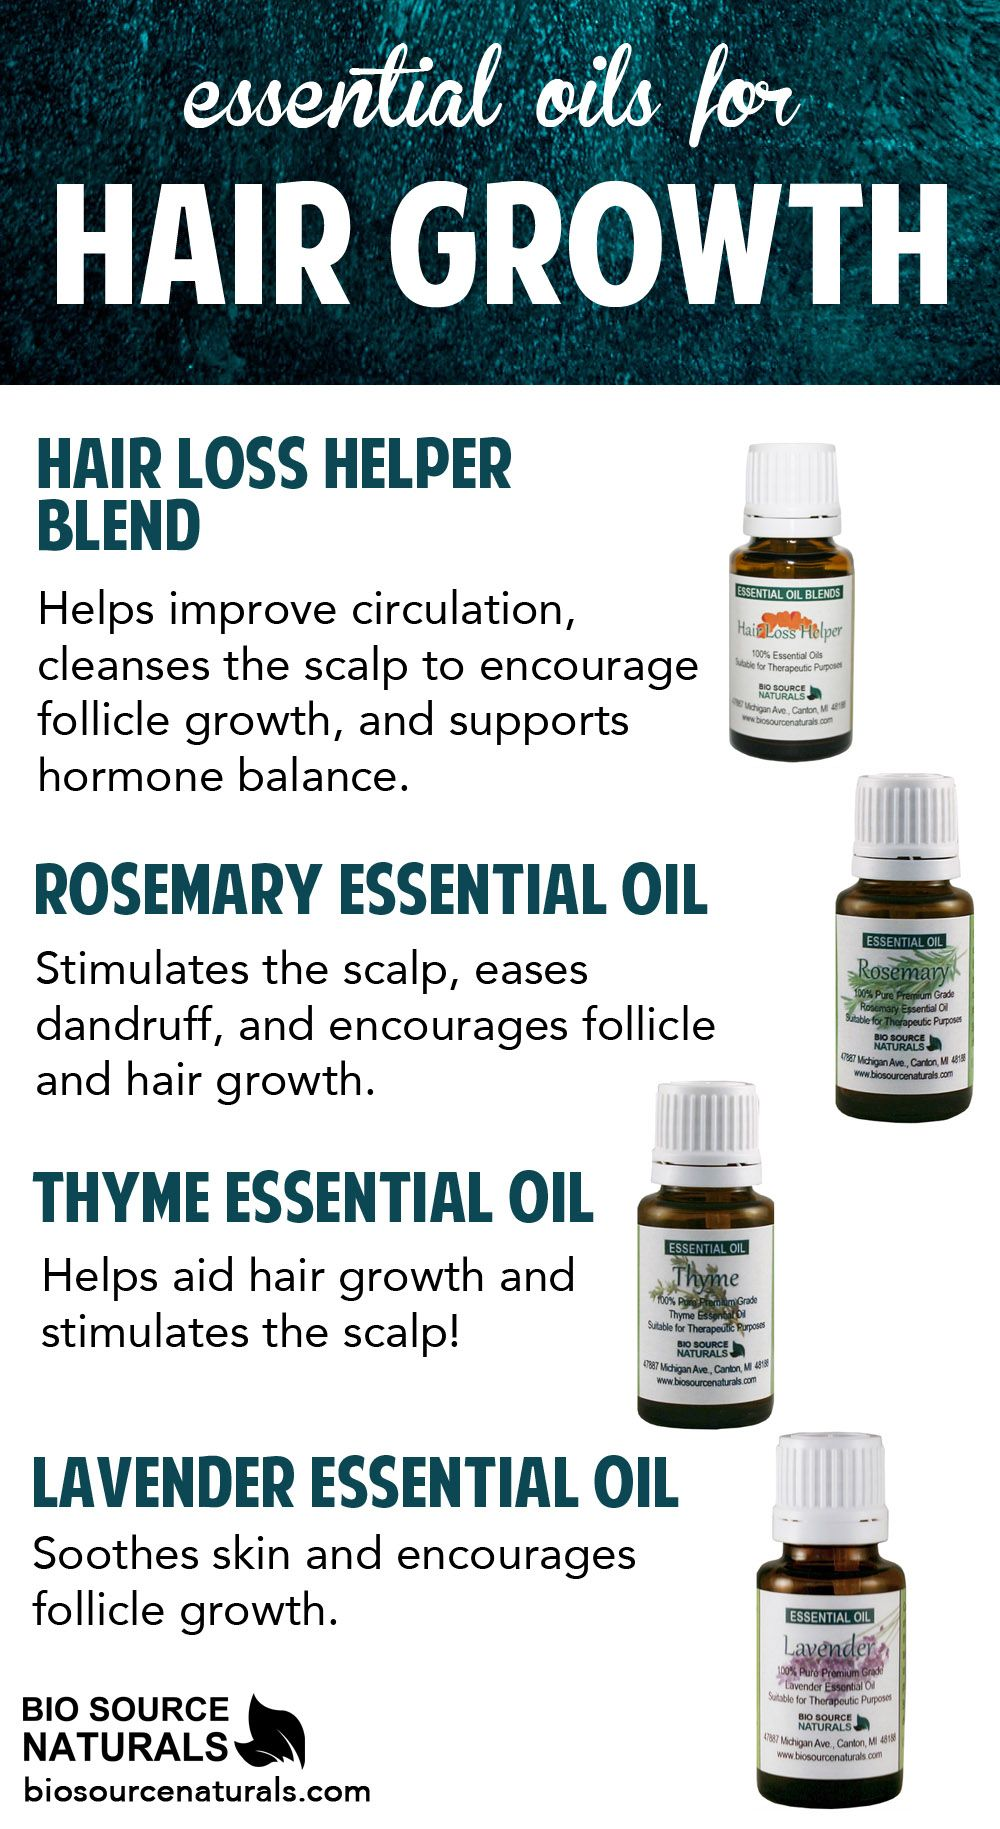 Hair Loss Helper Essential Oil Blend And Other Pure Essential Oils Can Help Stimulate Hair Growt Hair Growth Essentials Hair Growth Oil Essential Oils For Hair